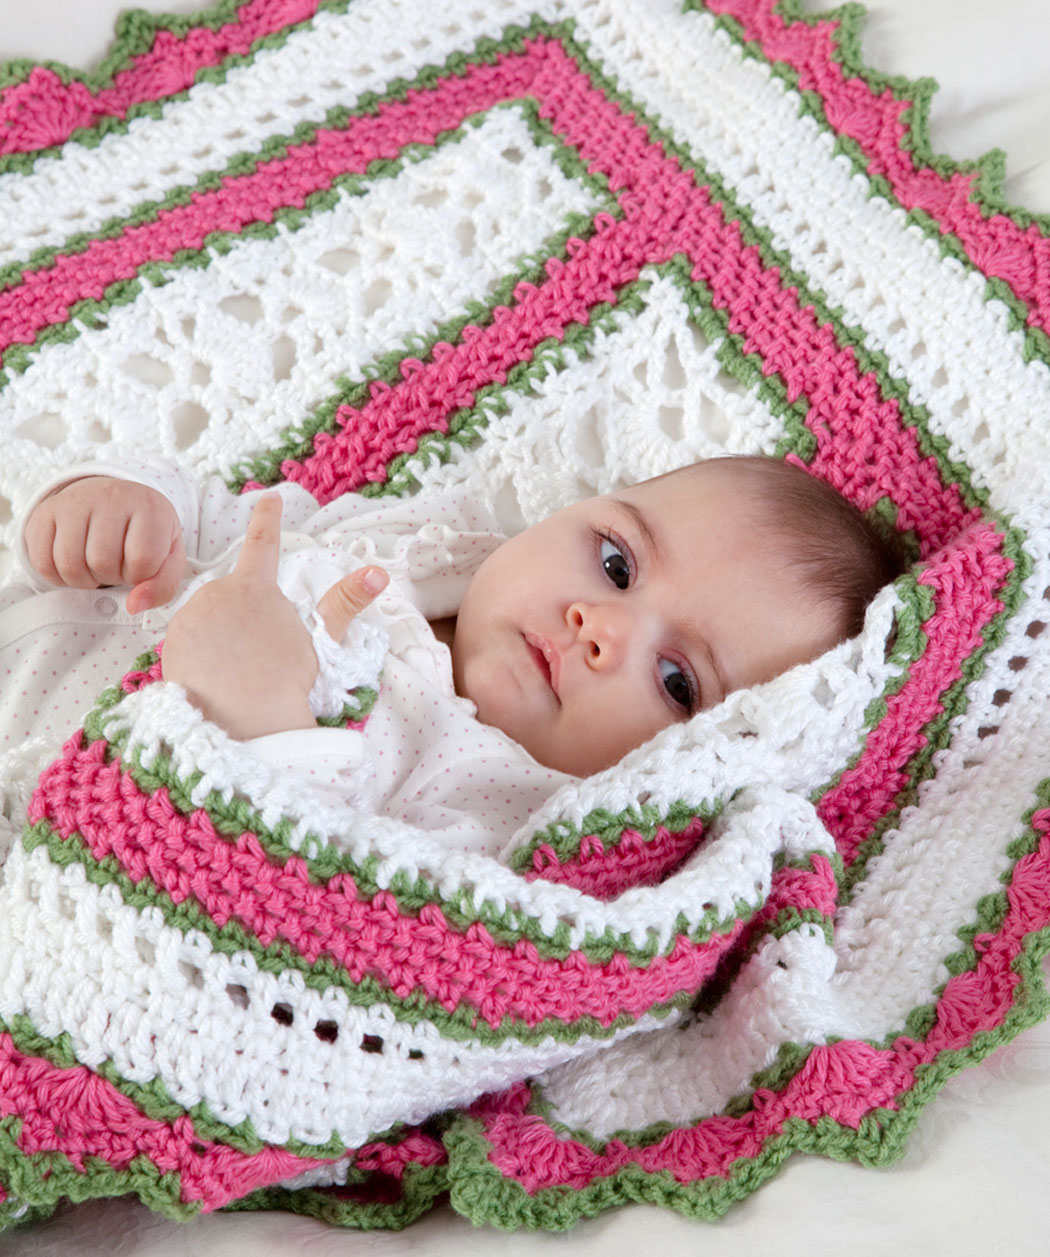 Baby Love Blanket Free Crochet Pattern : 10 Beautiful Baby Blanket Free Patterns Beautiful ...